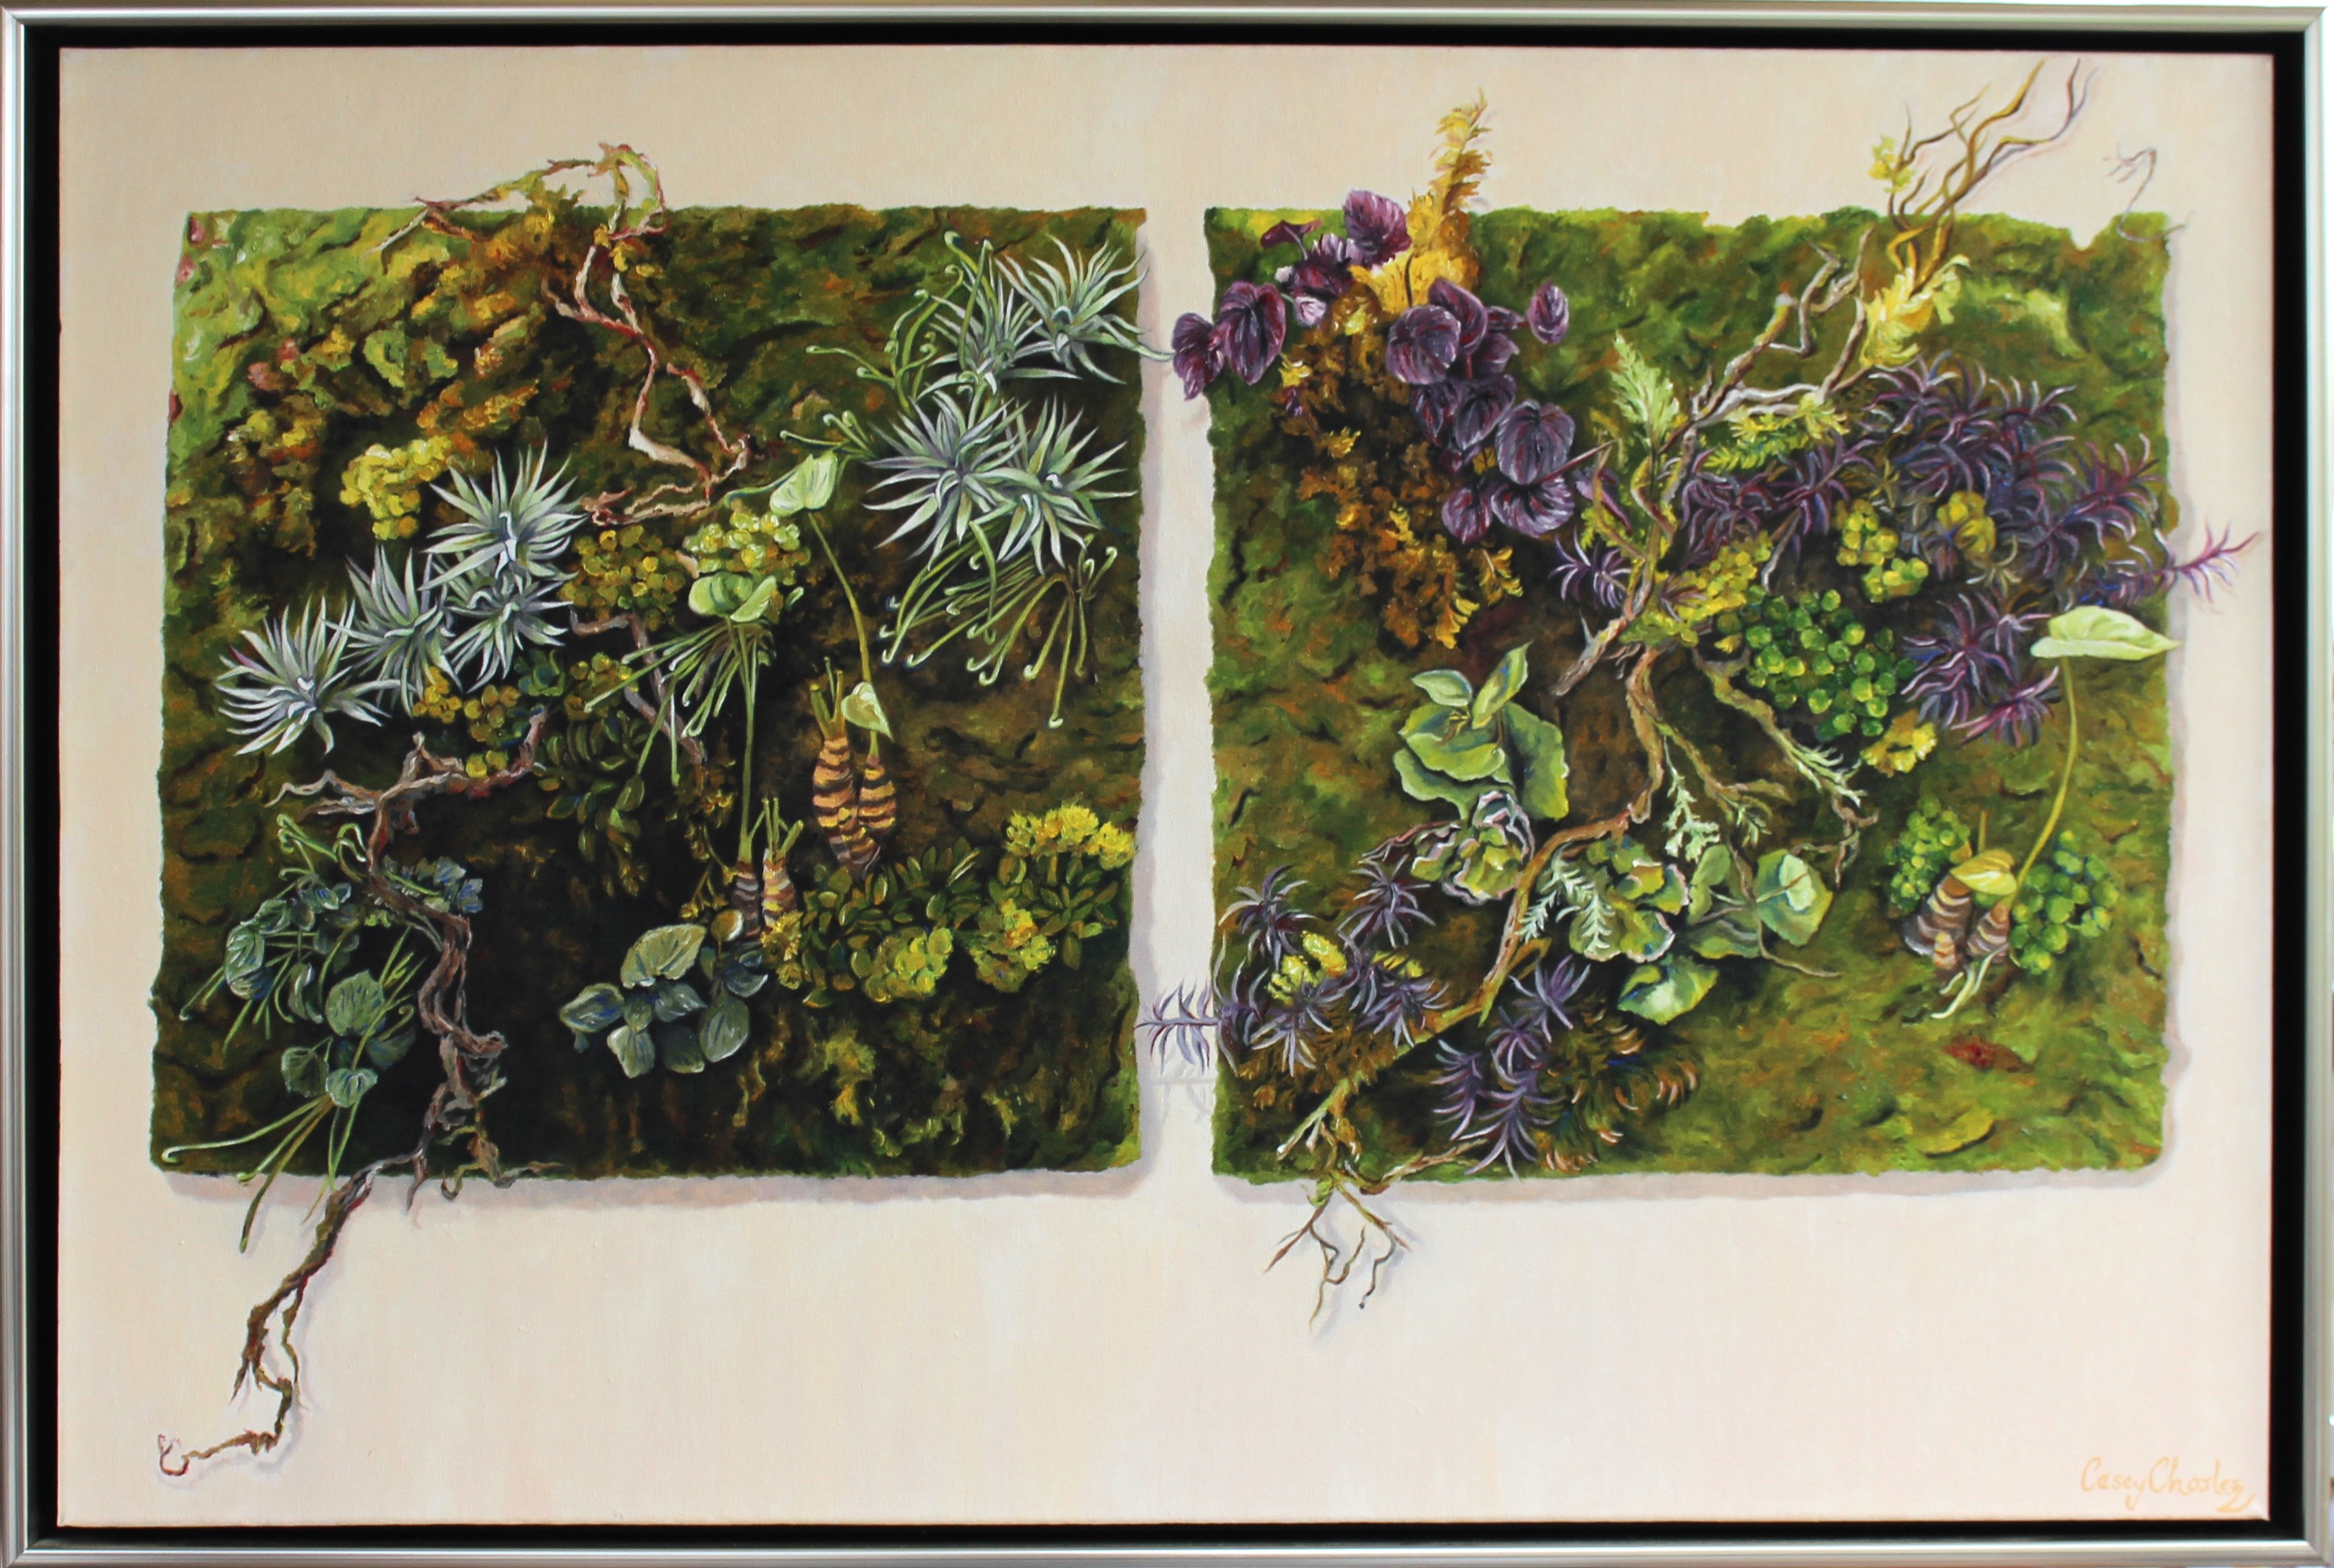 'The French Vertical Garden' Oil on Canvas 92cm x 62cm